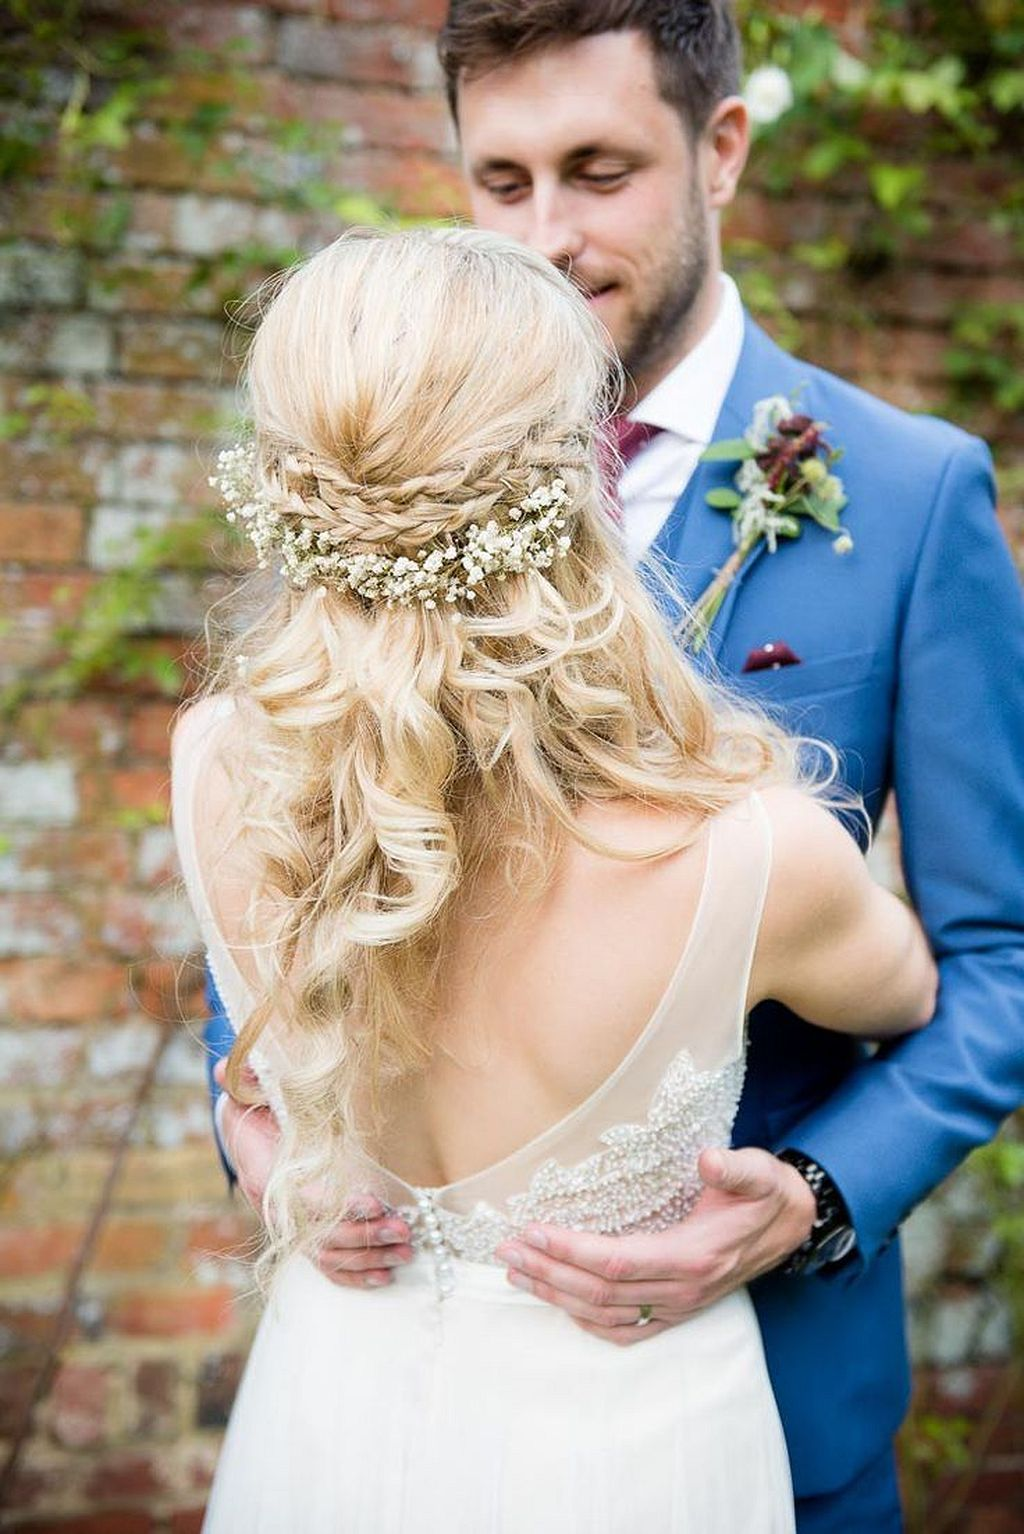 70 beautiful hair style for bride with flower hair style veil awesome 70 beautiful hair style for bride with flower httpsweddmagz70 beautiful hair style for bride with flower izmirmasajfo